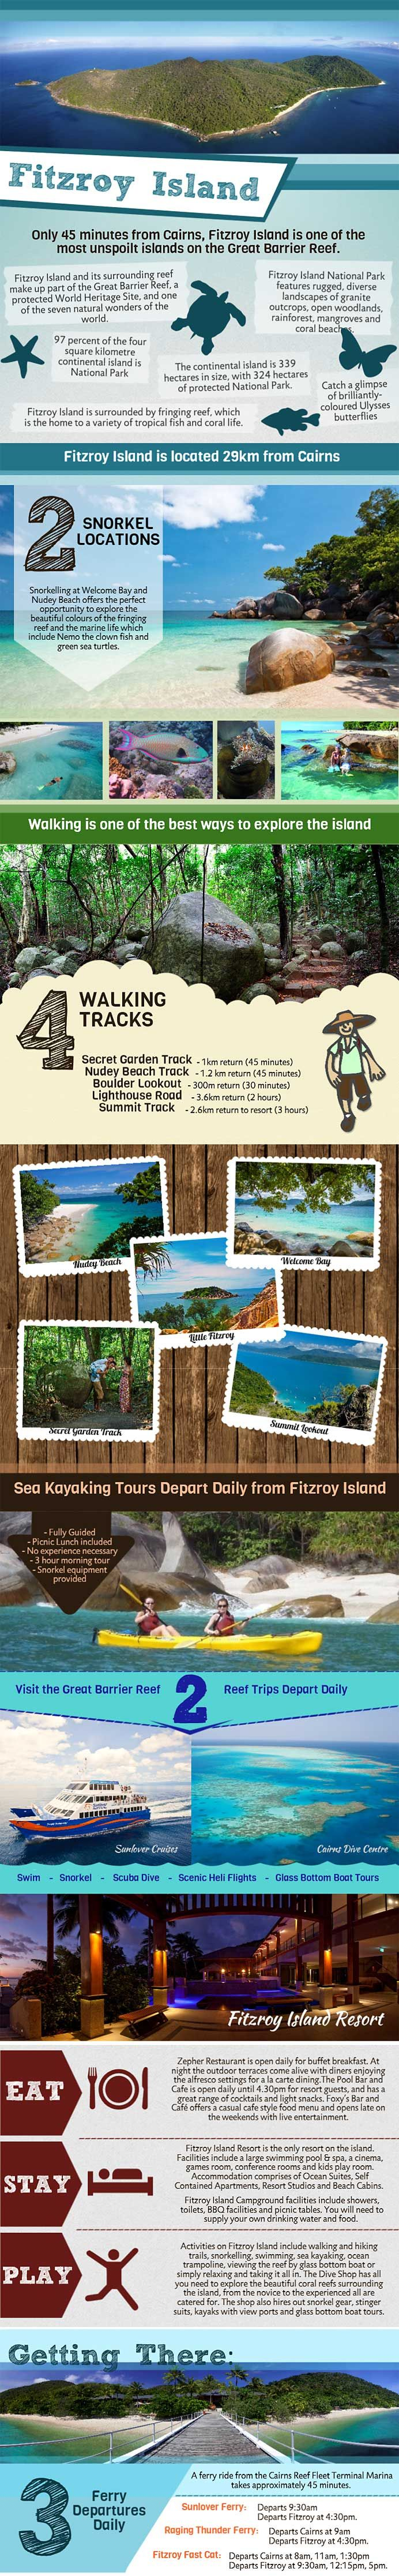 Fitzroy Island Infographic. Went there with my family when I was younger and hoping to take my kids there in the not so distant future.